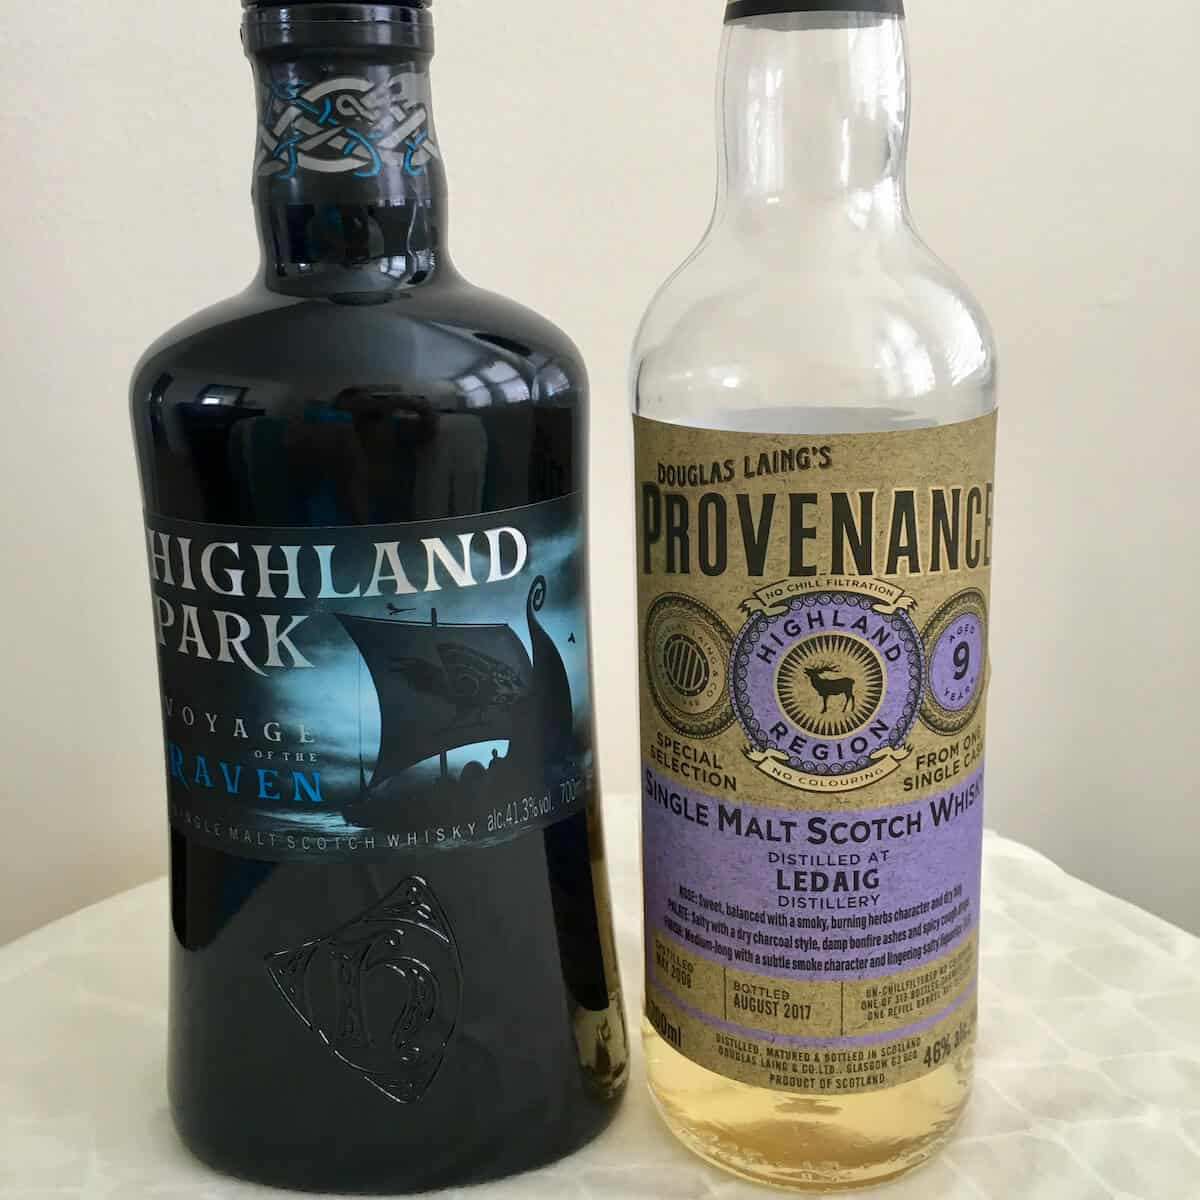 Highland Park Voyage of the Raven and Douglas Laing Provenance in bottles on a table.